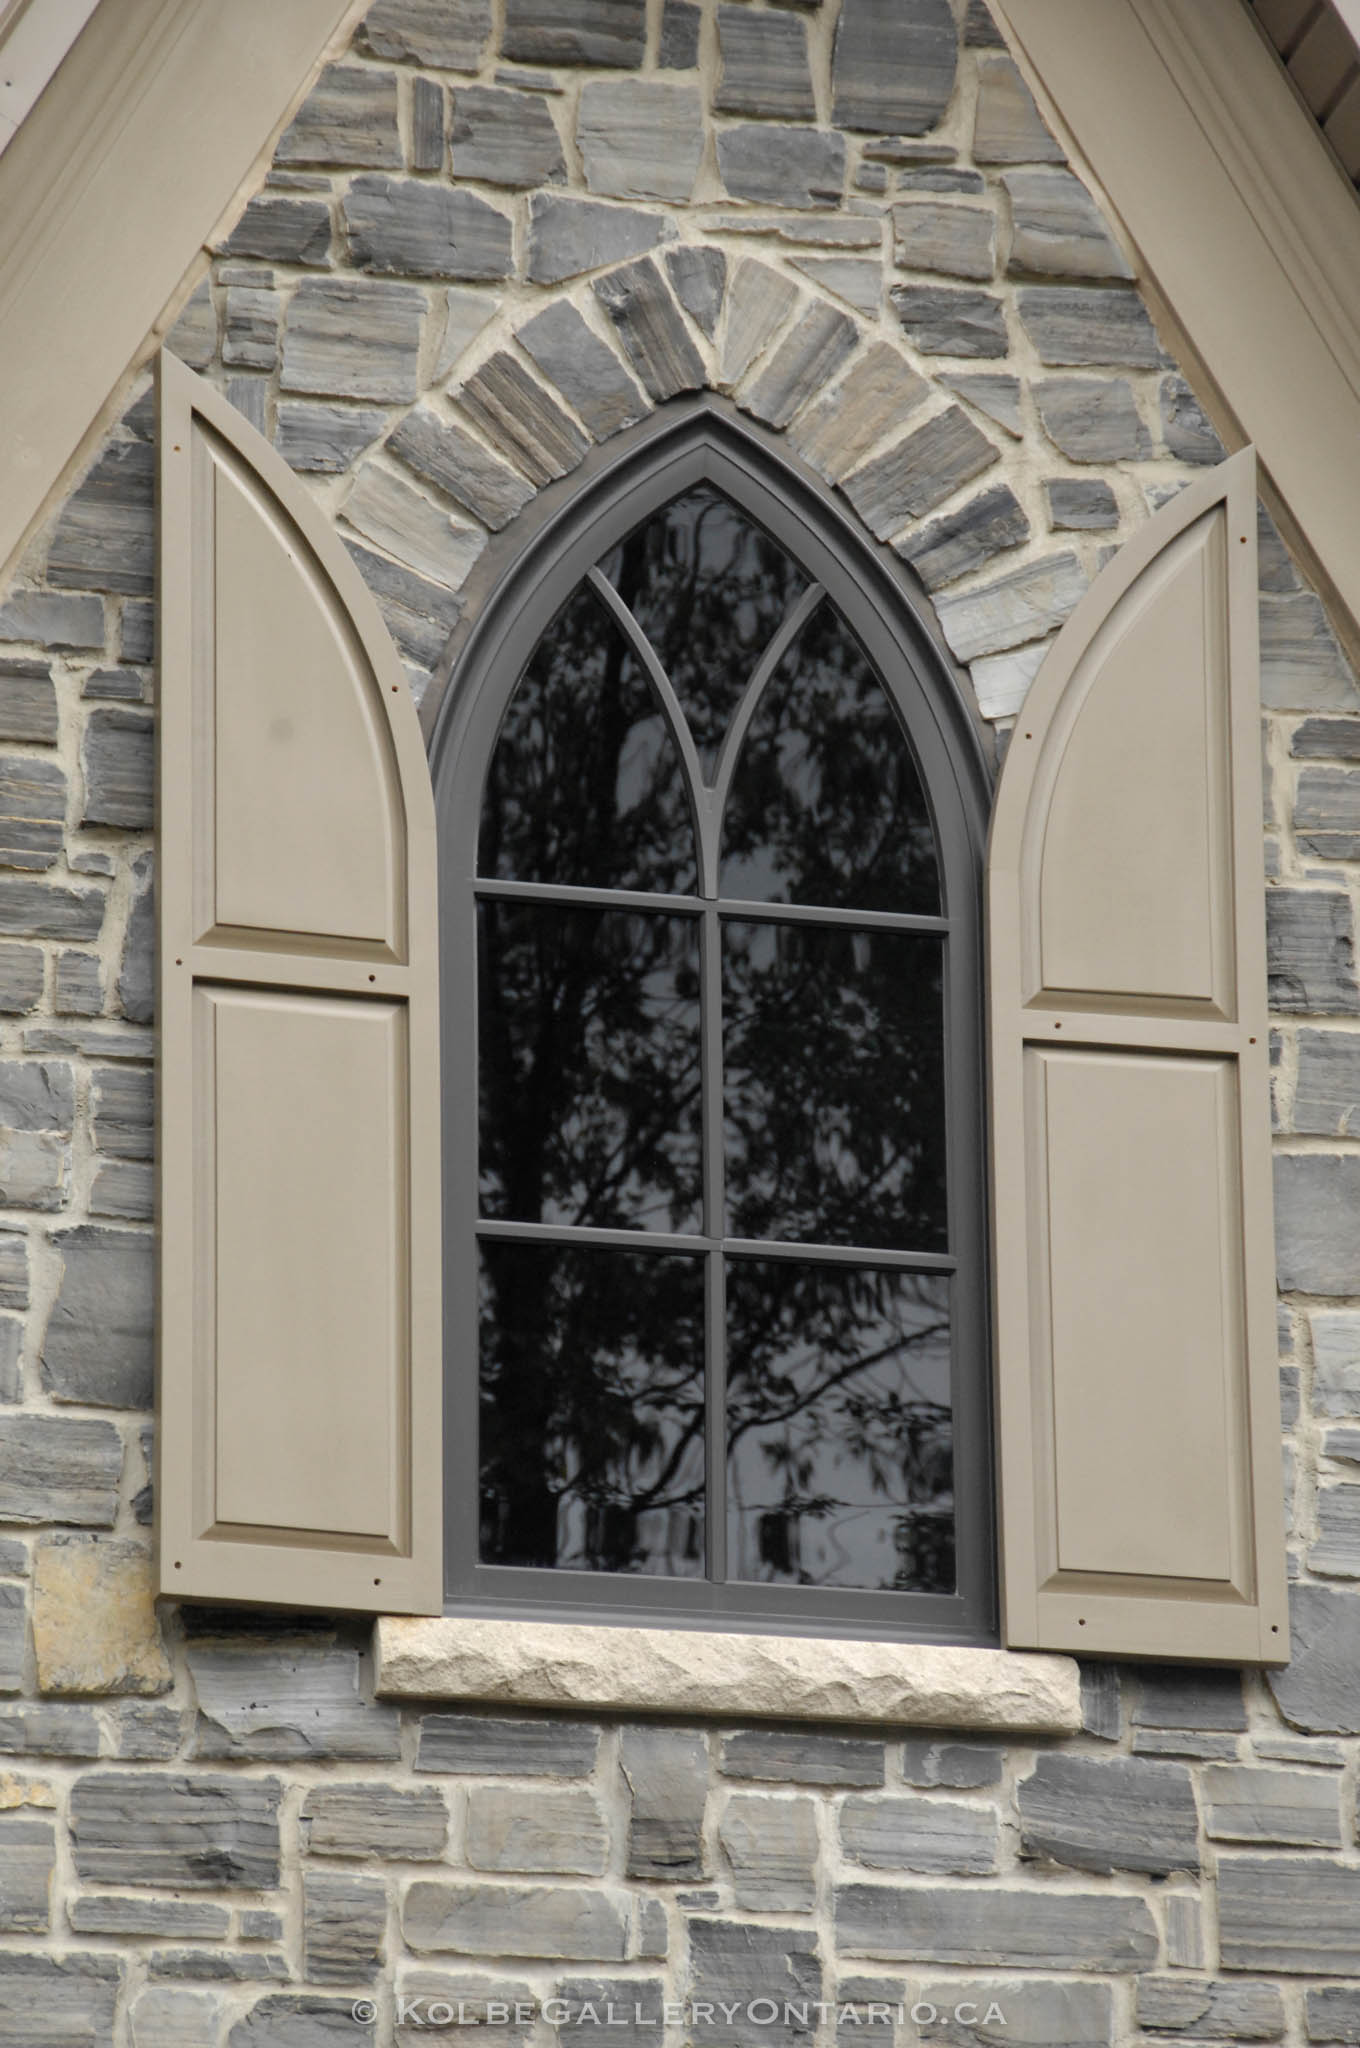 KolbeGalleryOntario.ca-windows-and-doors---20130903-133906